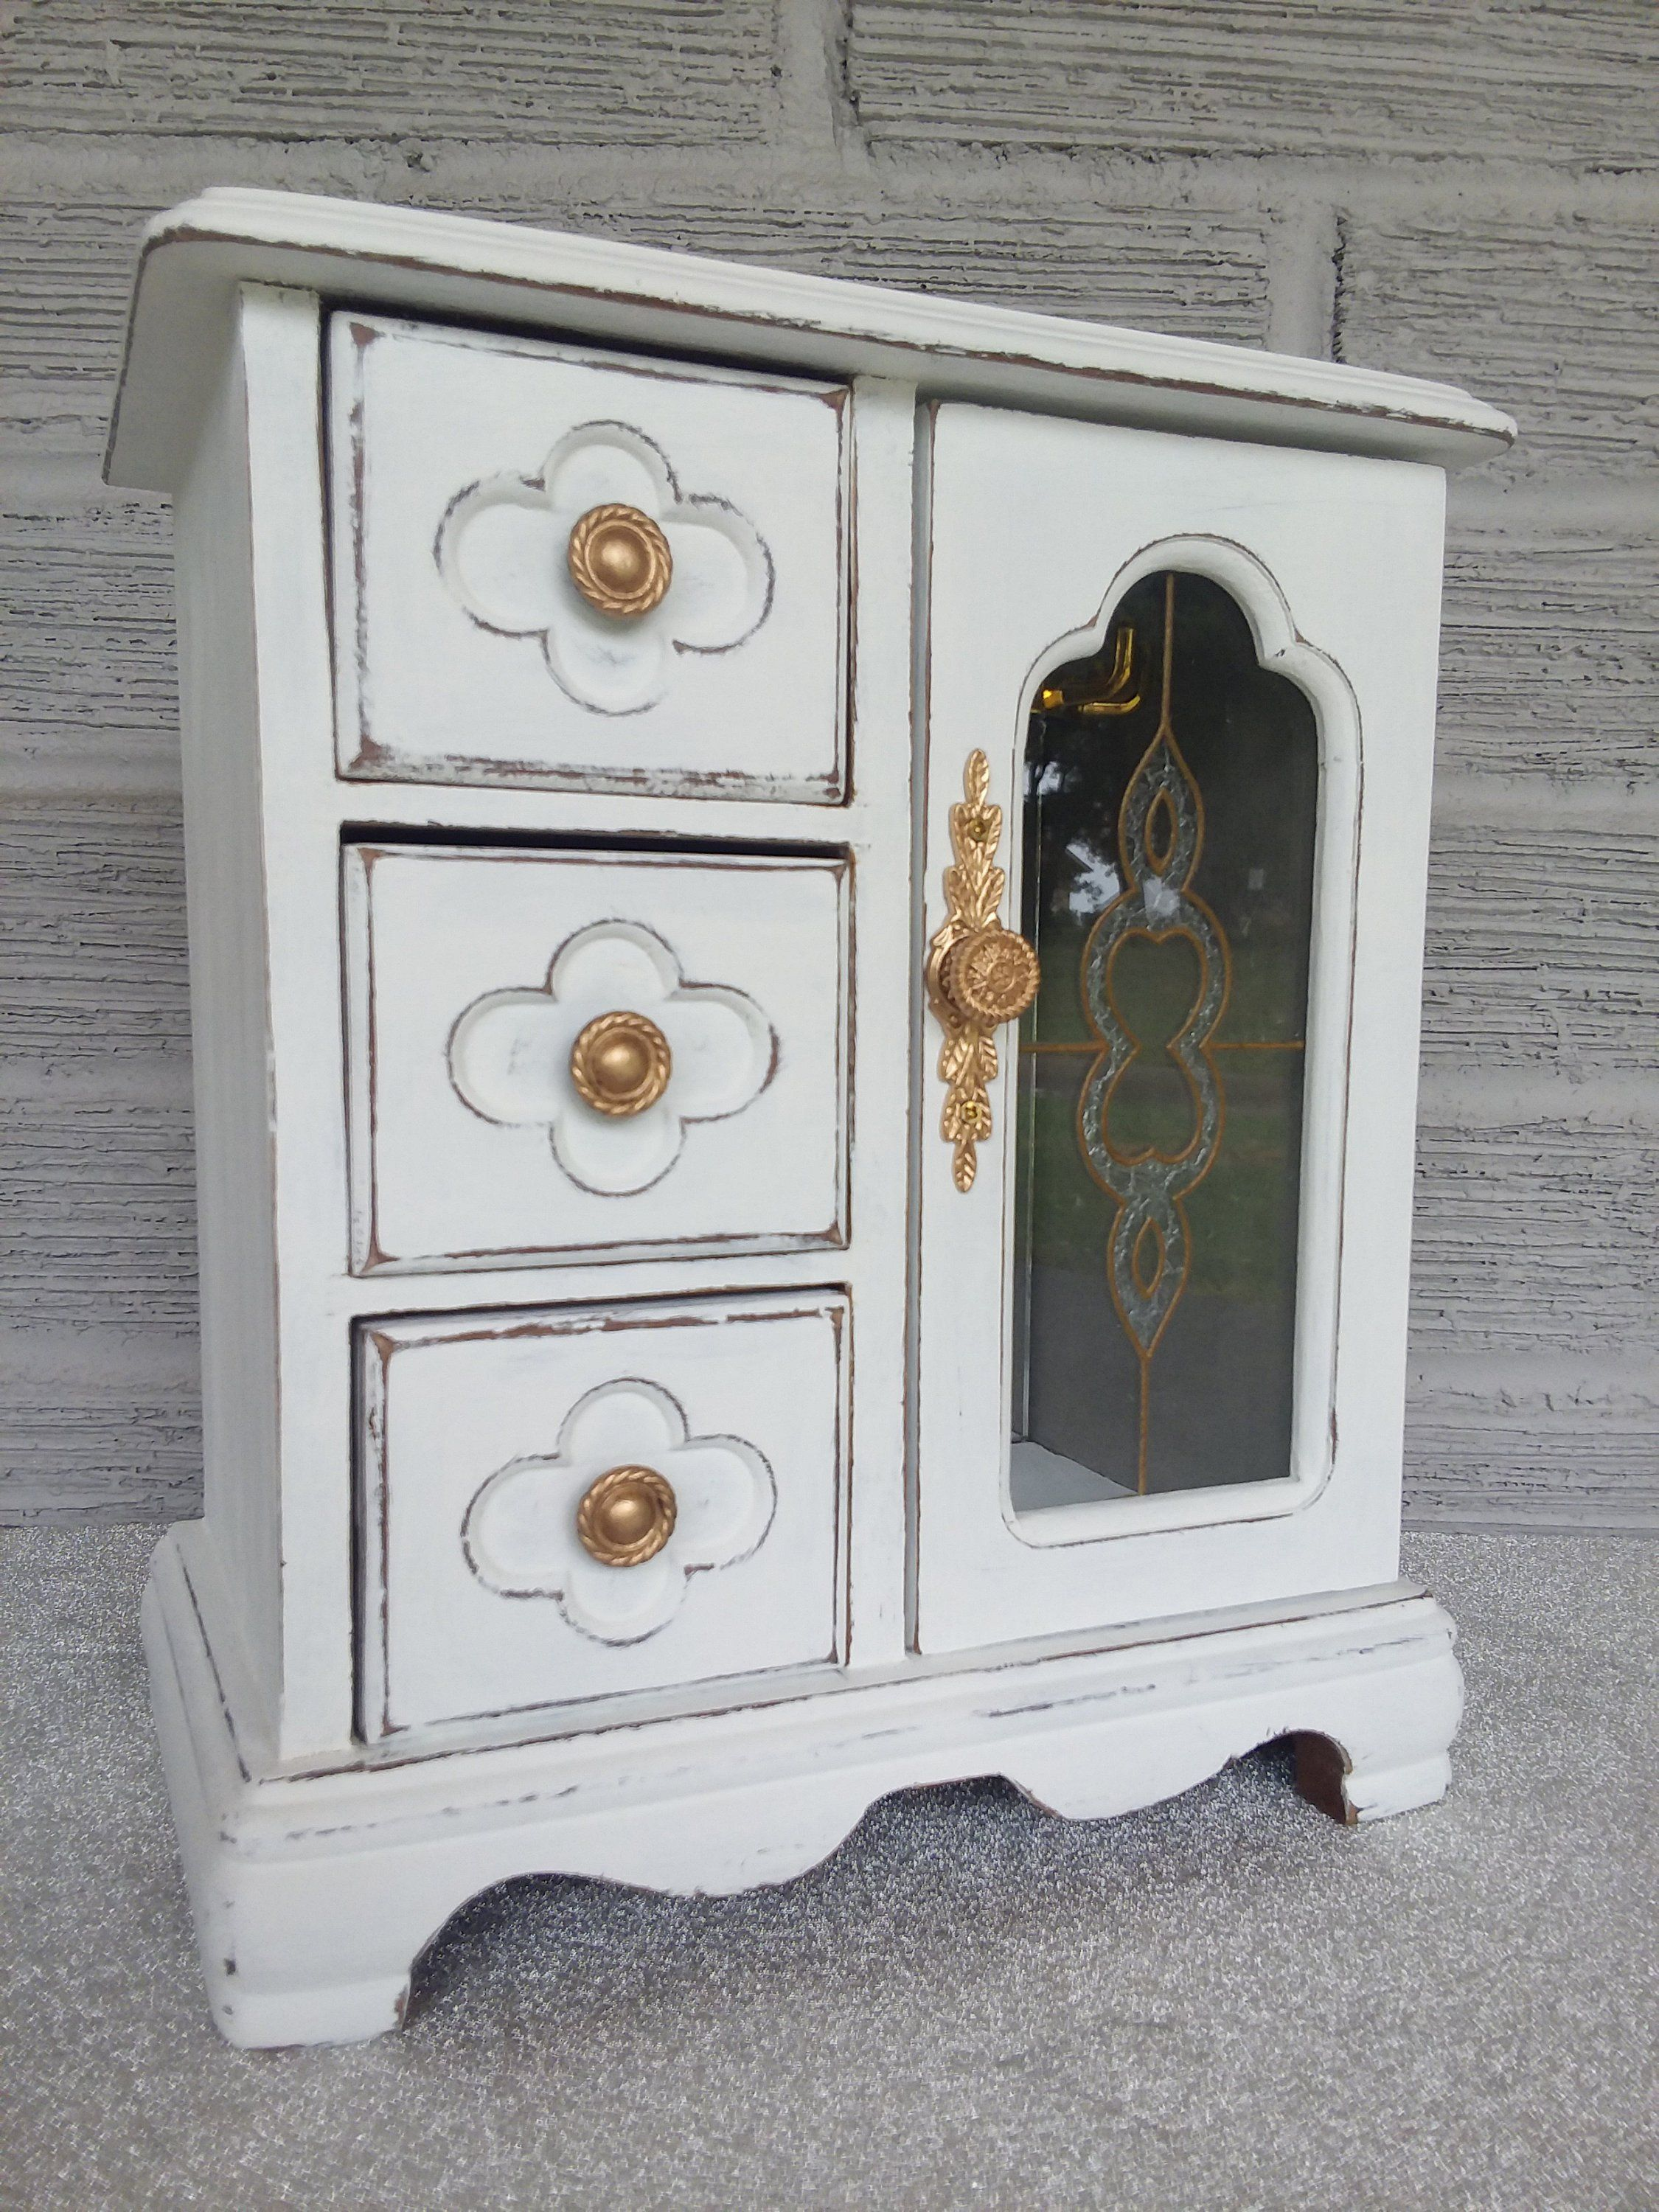 Small Shabby Chic White Jewelry Box Vintage Wooden Jewelry Armoire Painted Distressed Refurbi Shabby Chic Jewellery Box Painted Jewelry Boxes White Shabby Chic